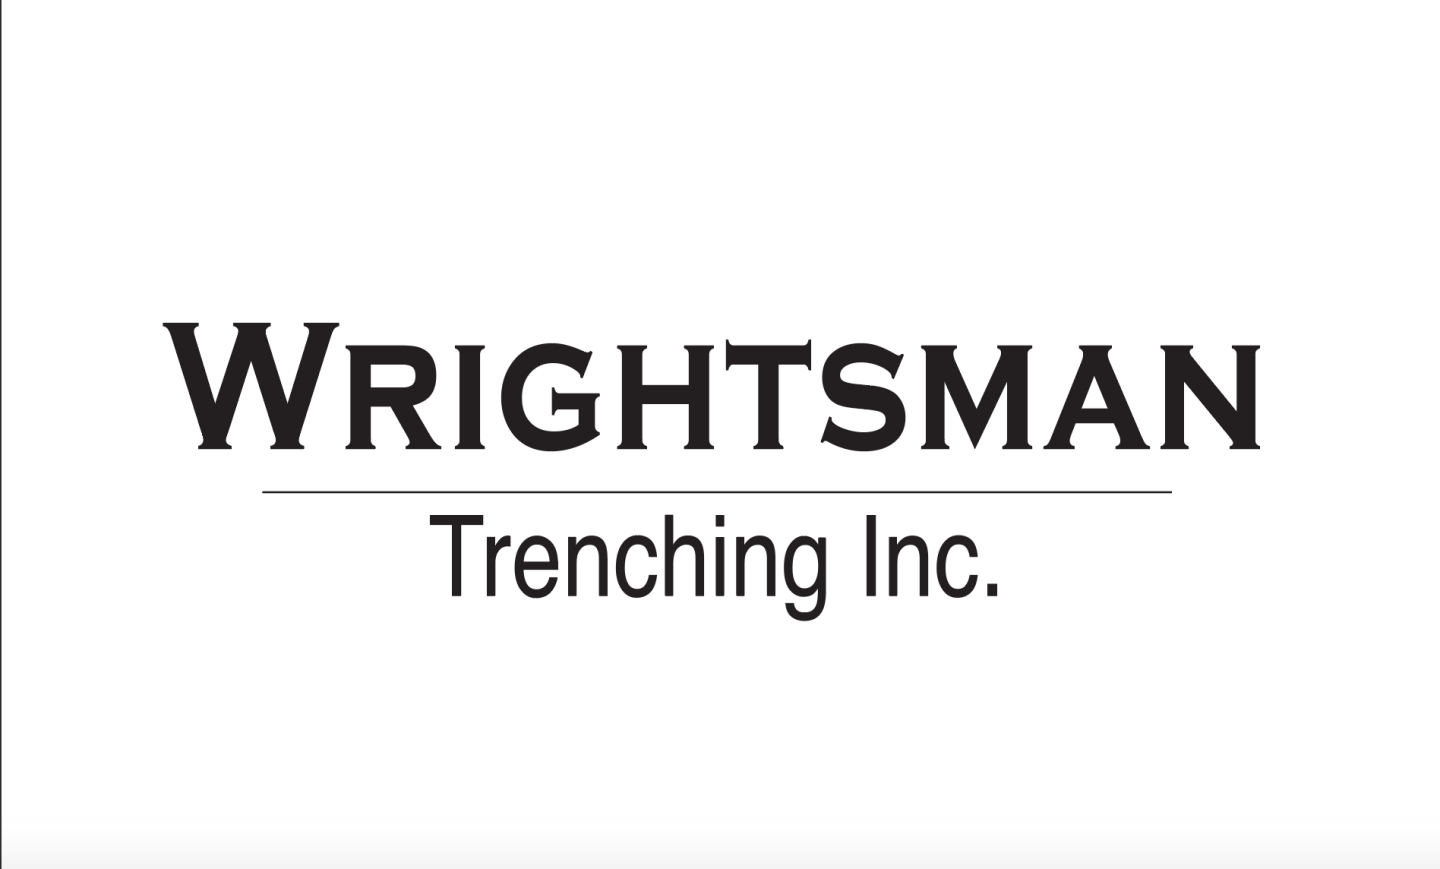 Wrightsman Trenching of Beatrice, Nebraska serving Southeast Nebraska for excavation and demolition needs.